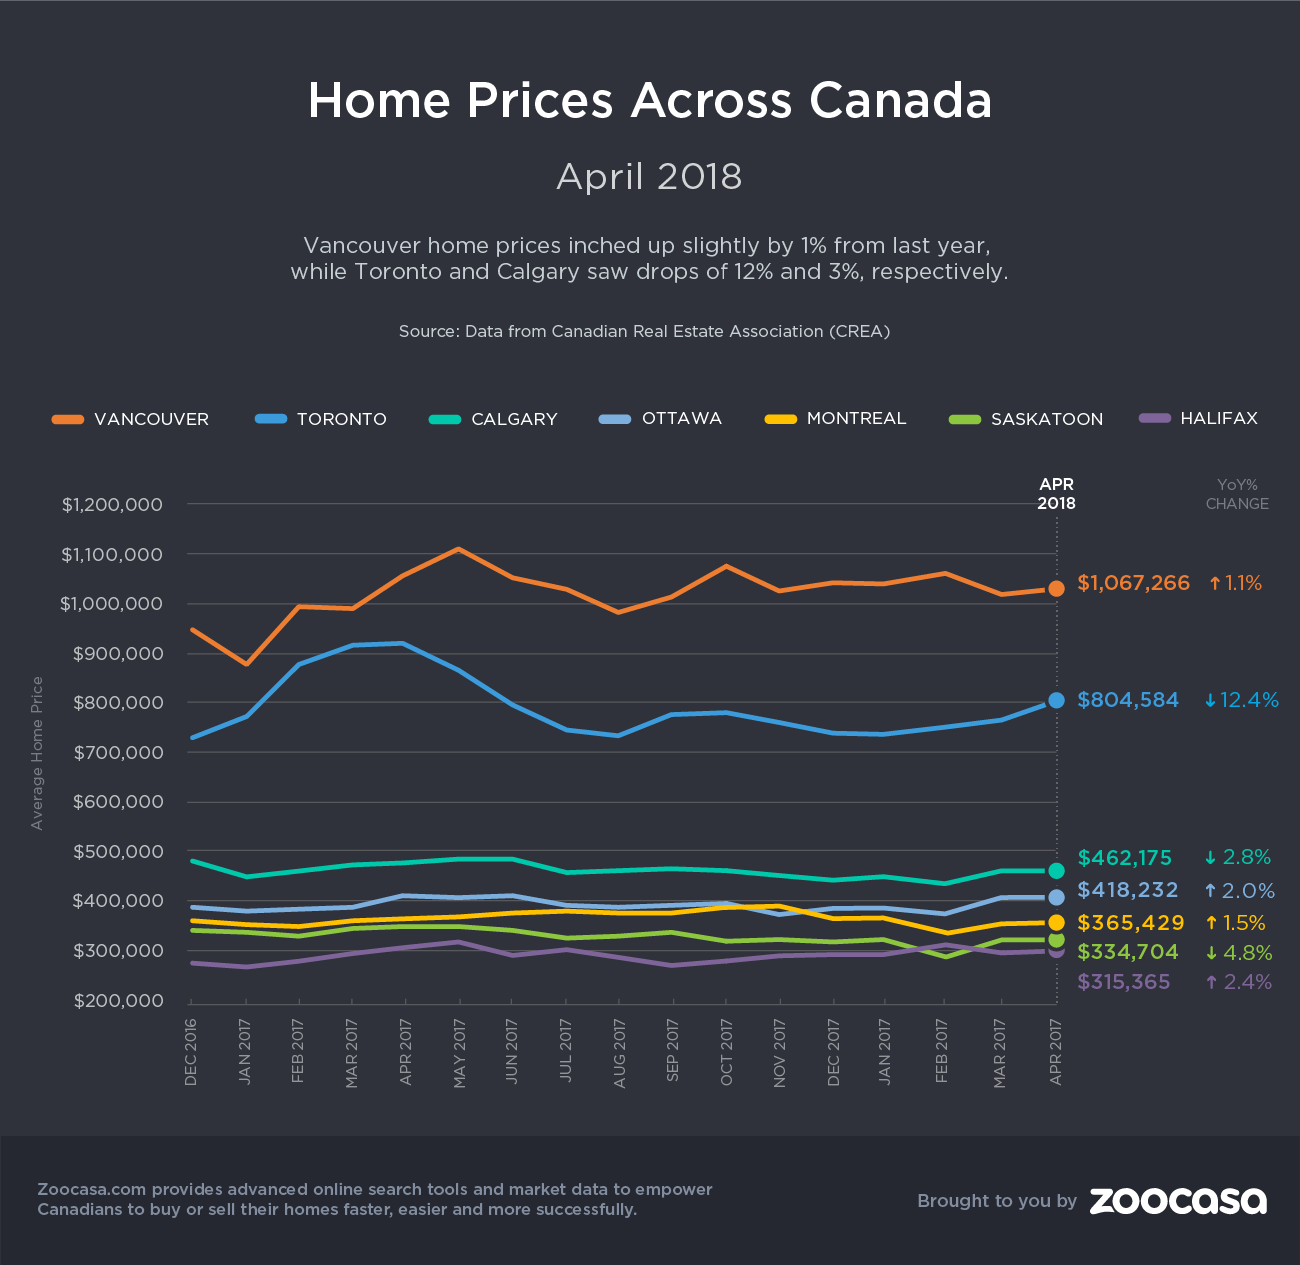 canada-home-prices-april-2018-zoocasa